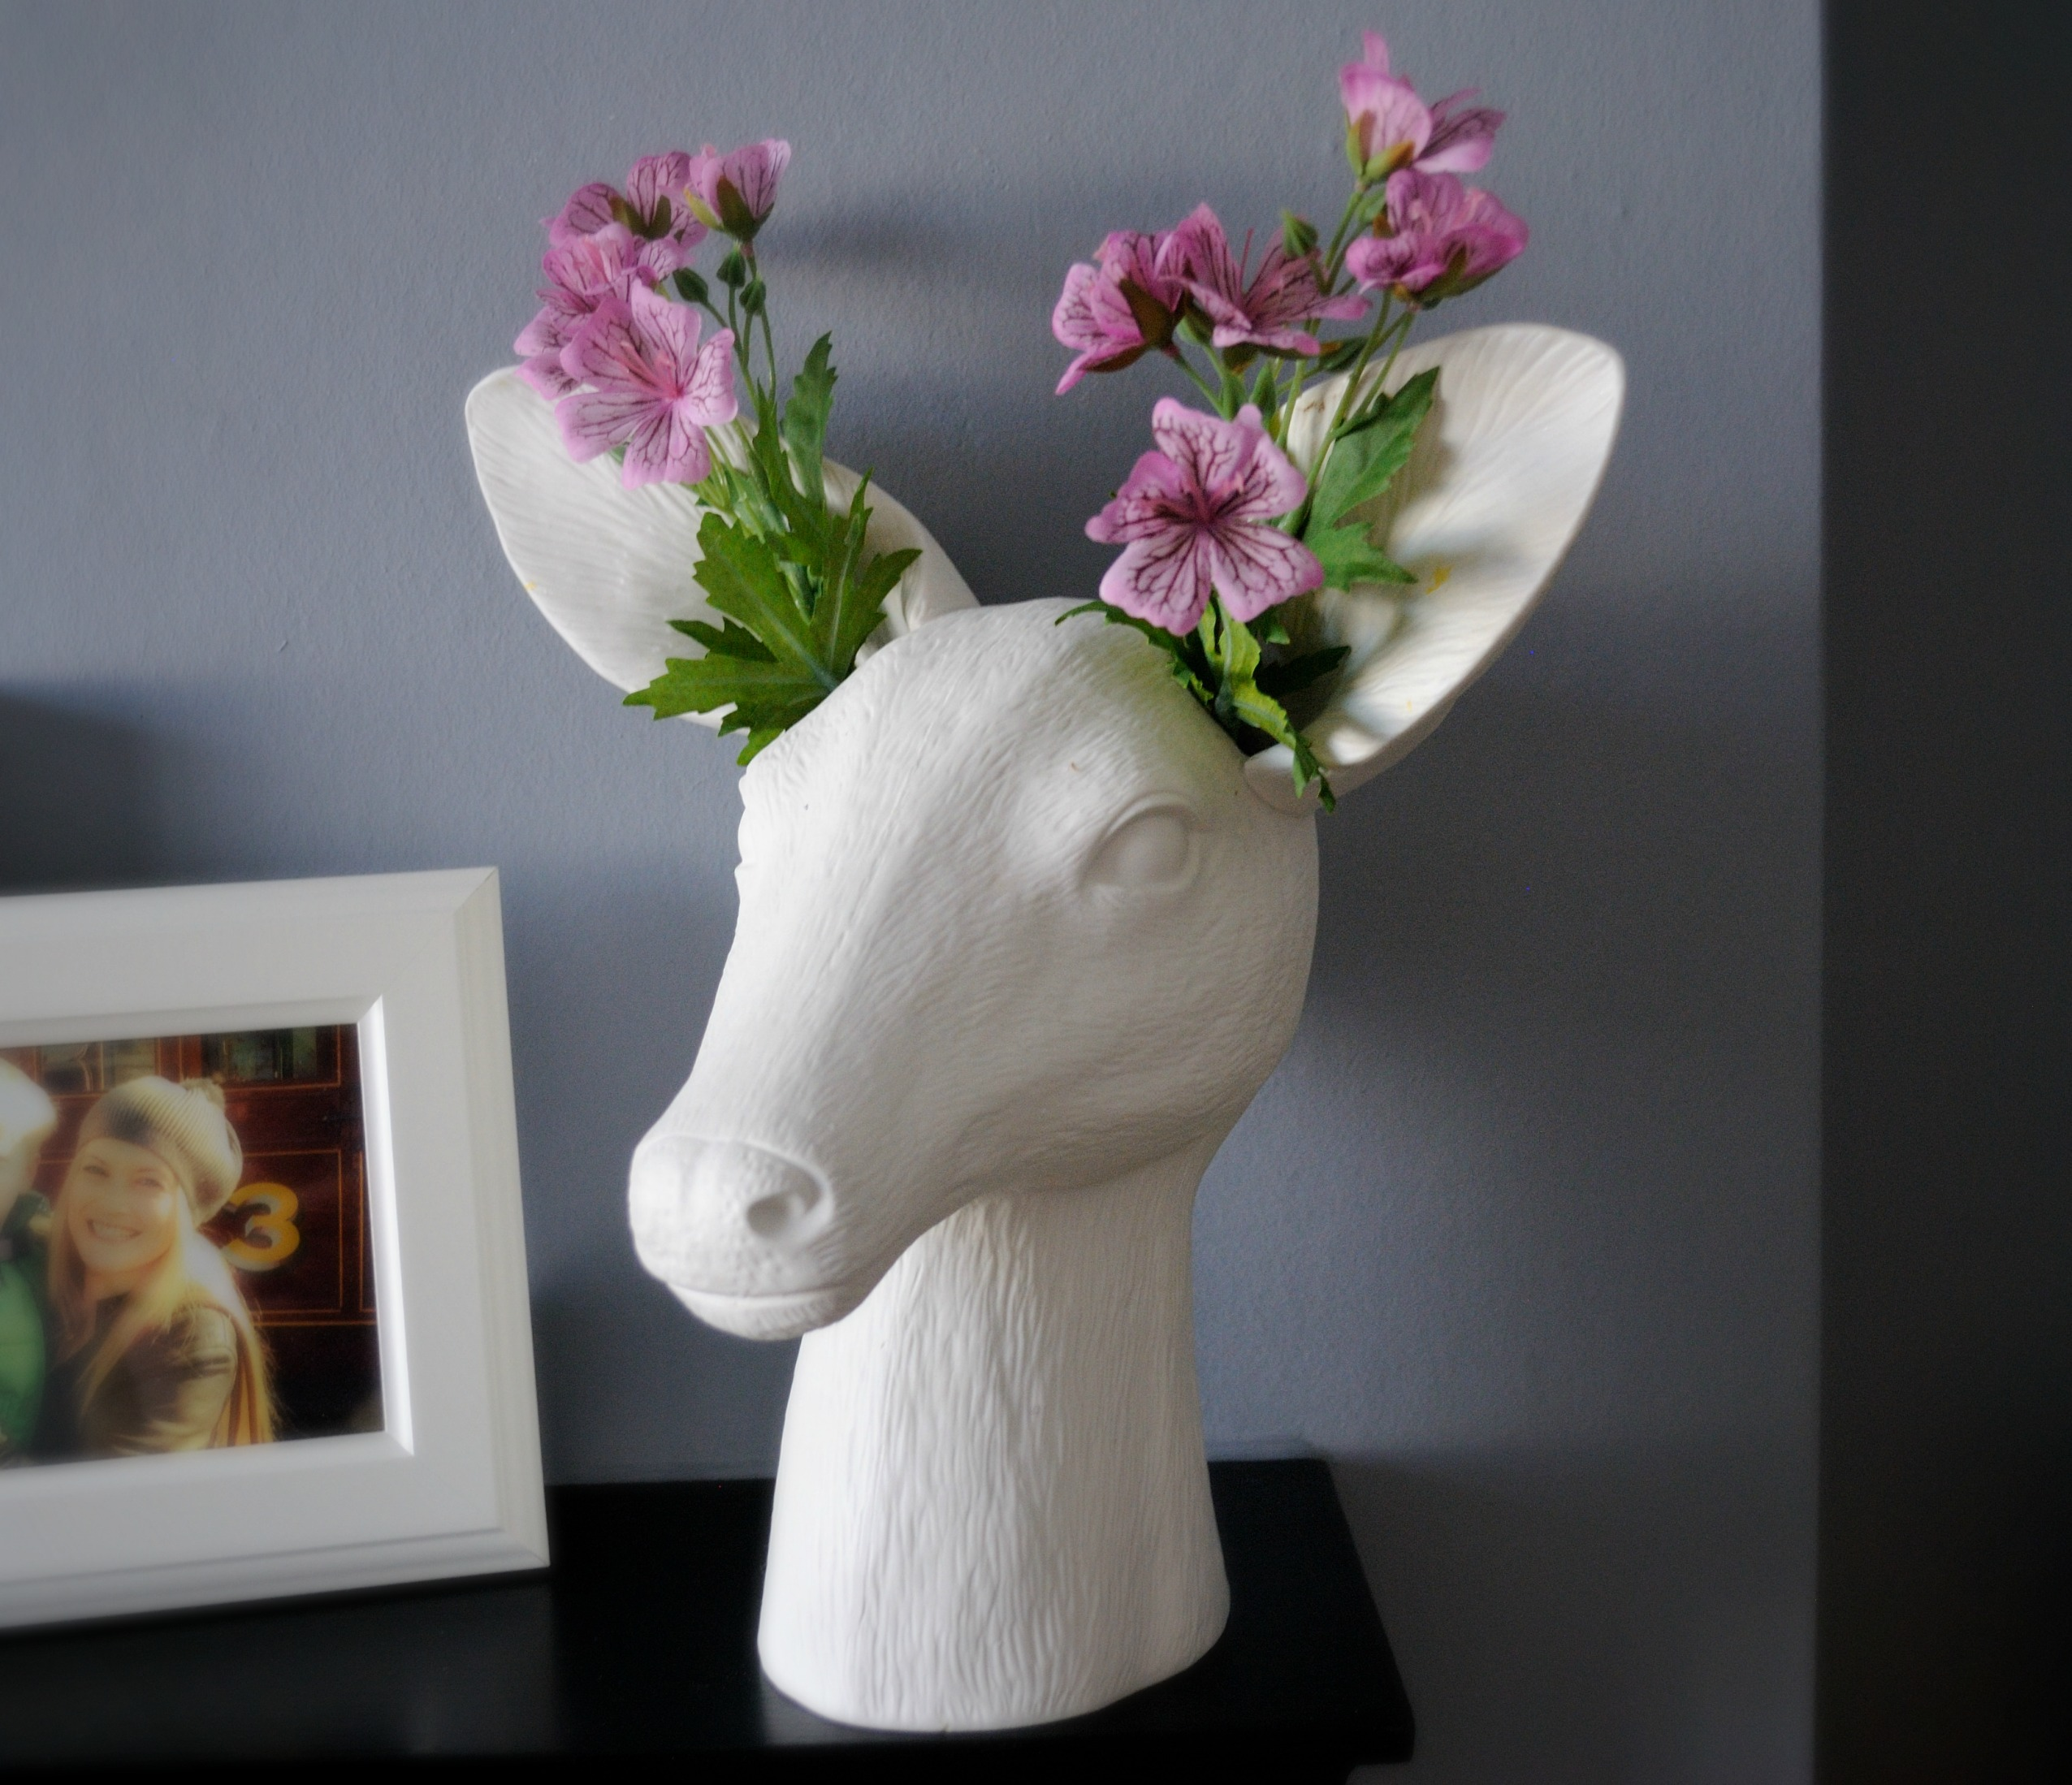 Home comforts- deer vase edit 1